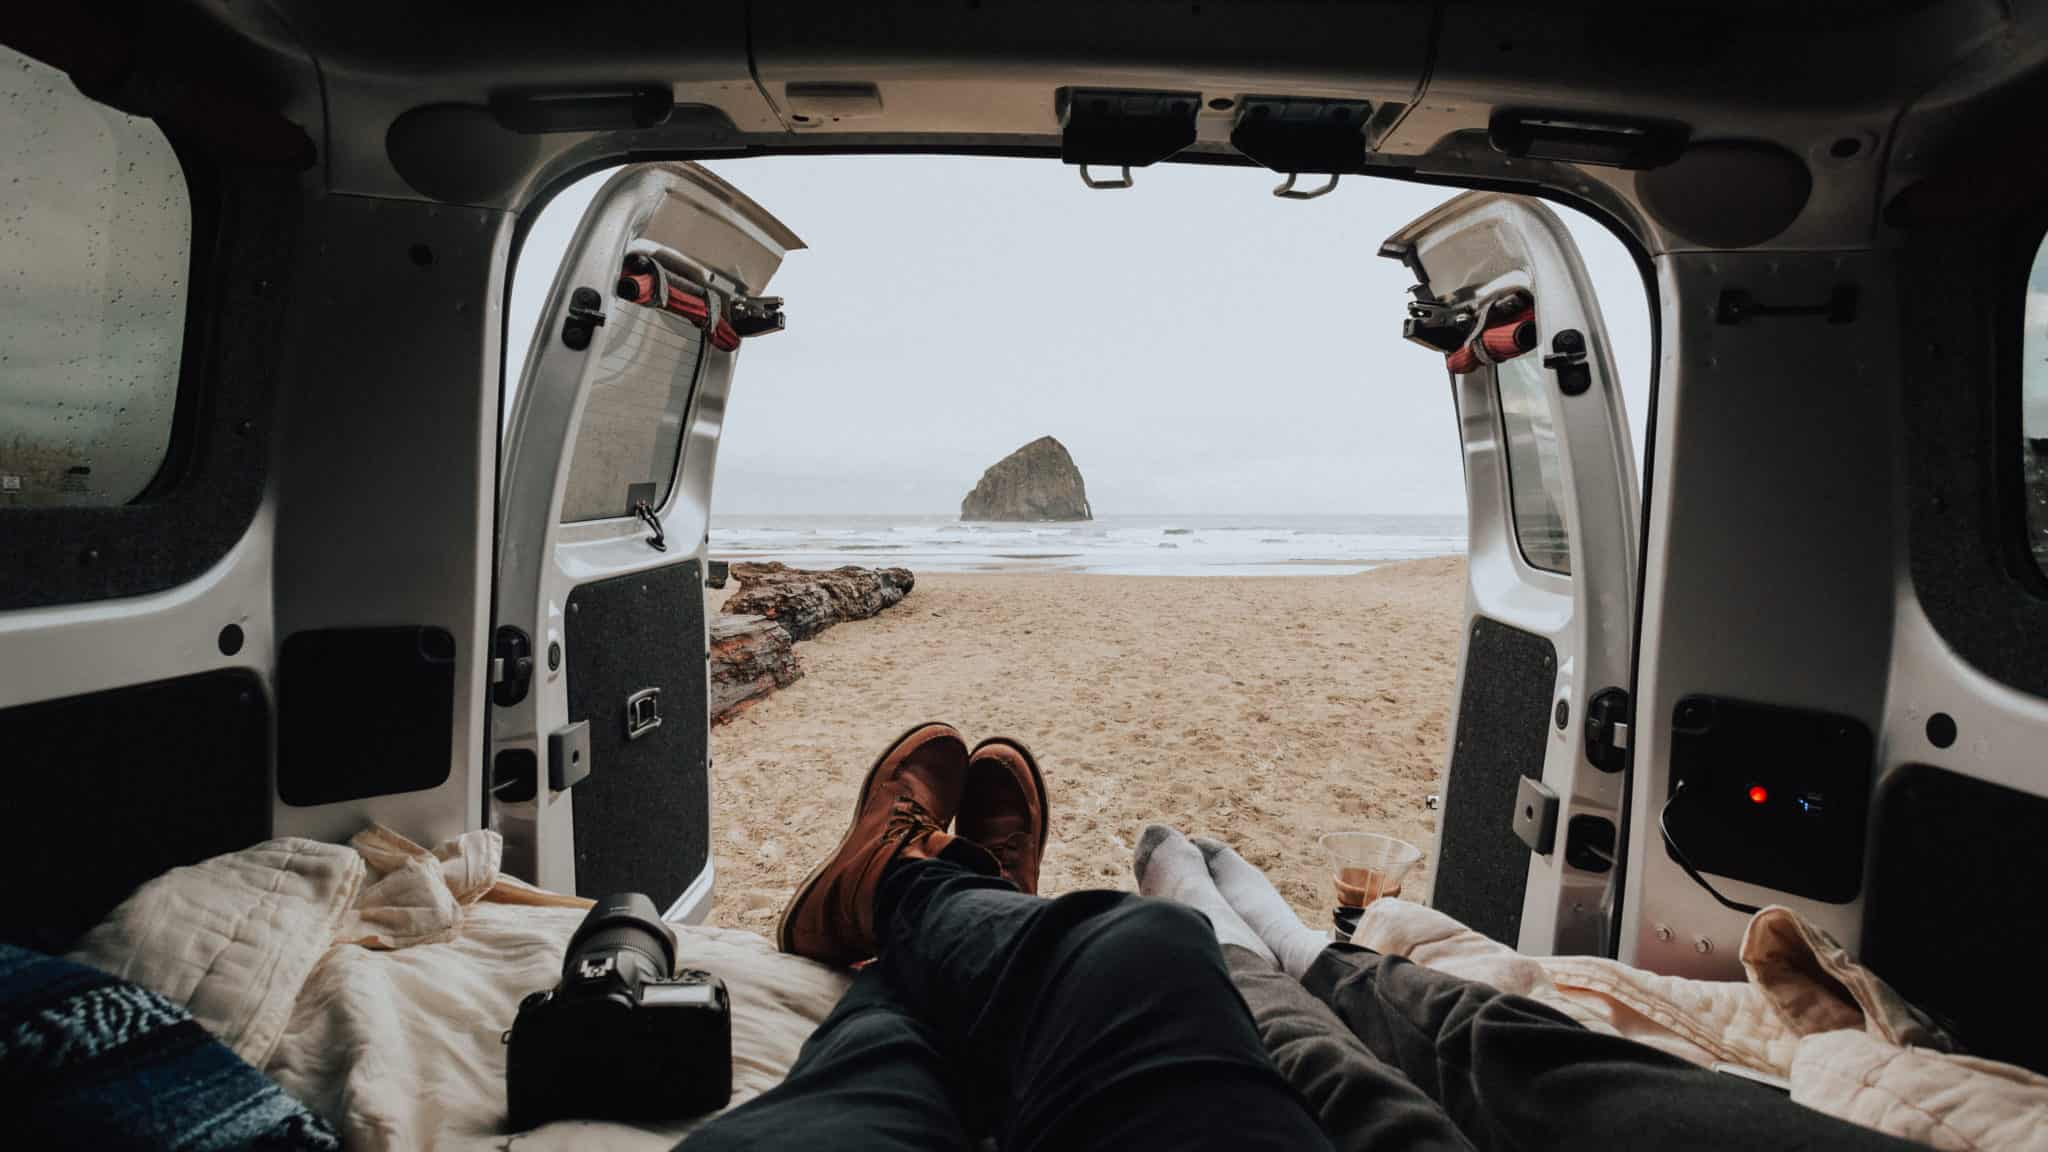 Sleeping in your car - Cape Kiwanda (Pacific City)